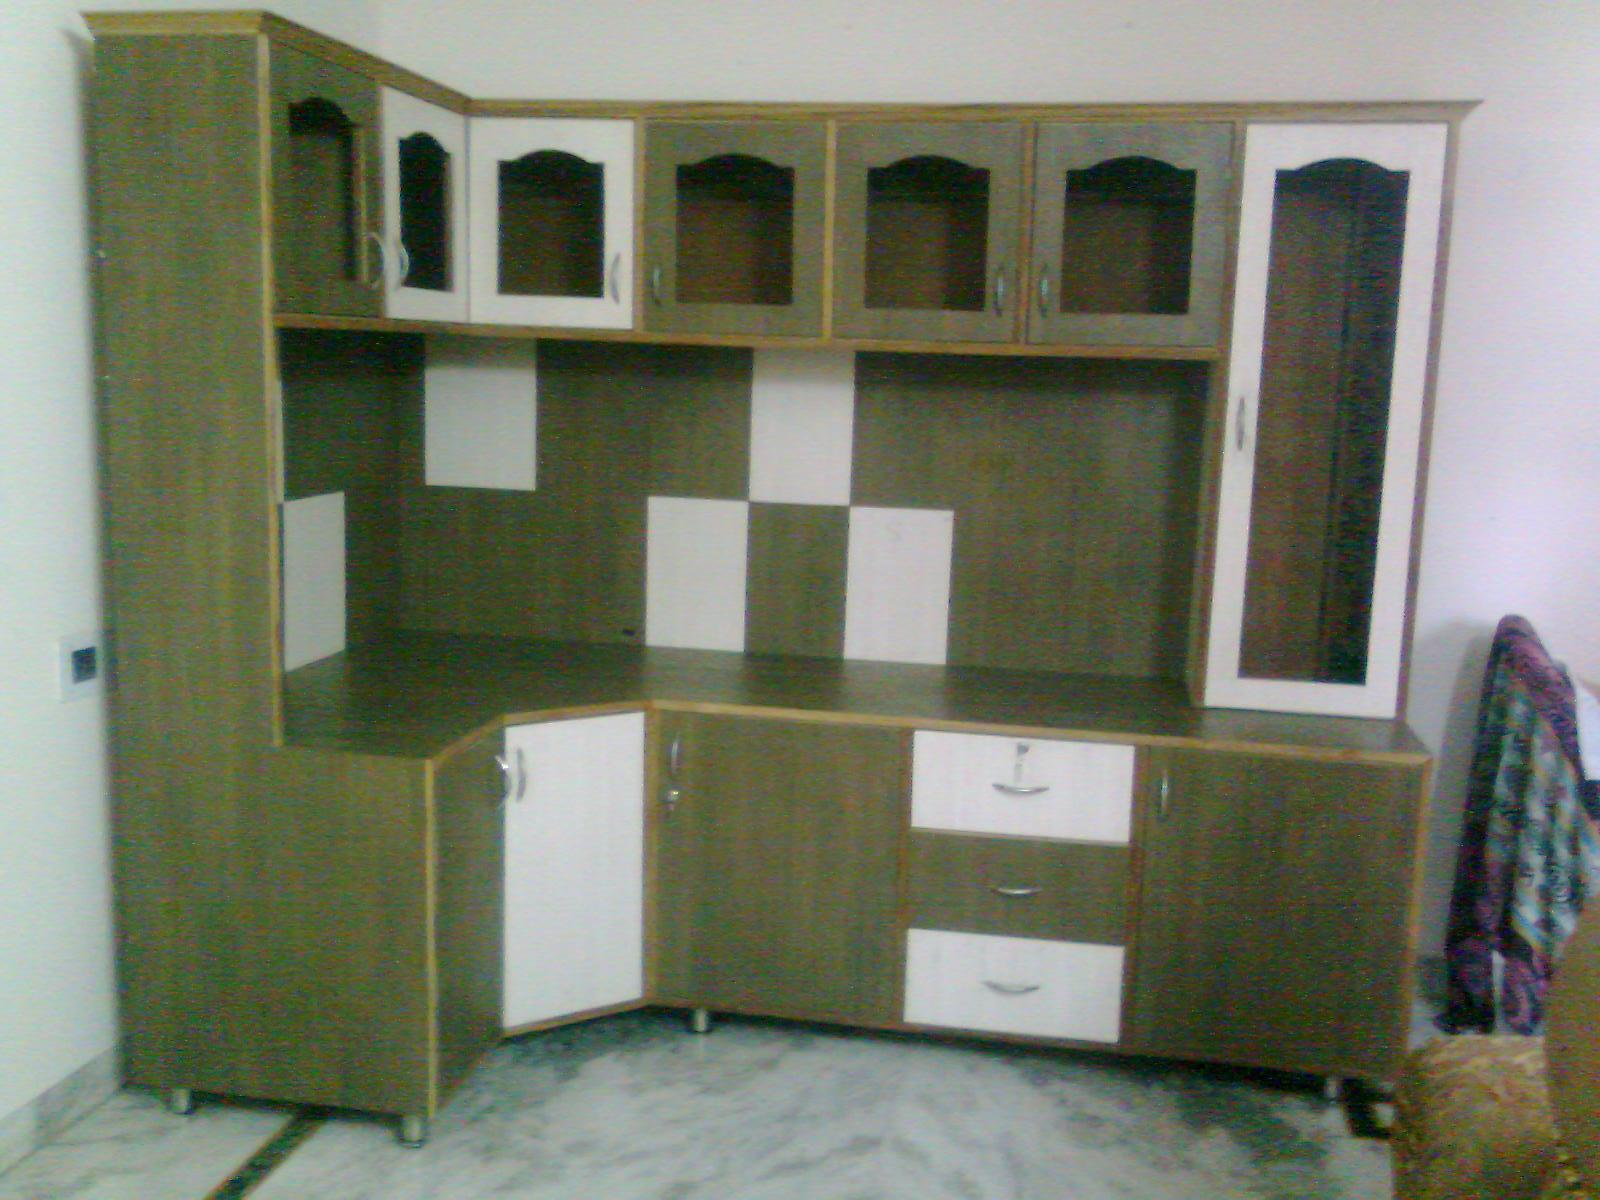 Kitchen Wall Almirah Design : Wooden almirah design joy studio gallery best